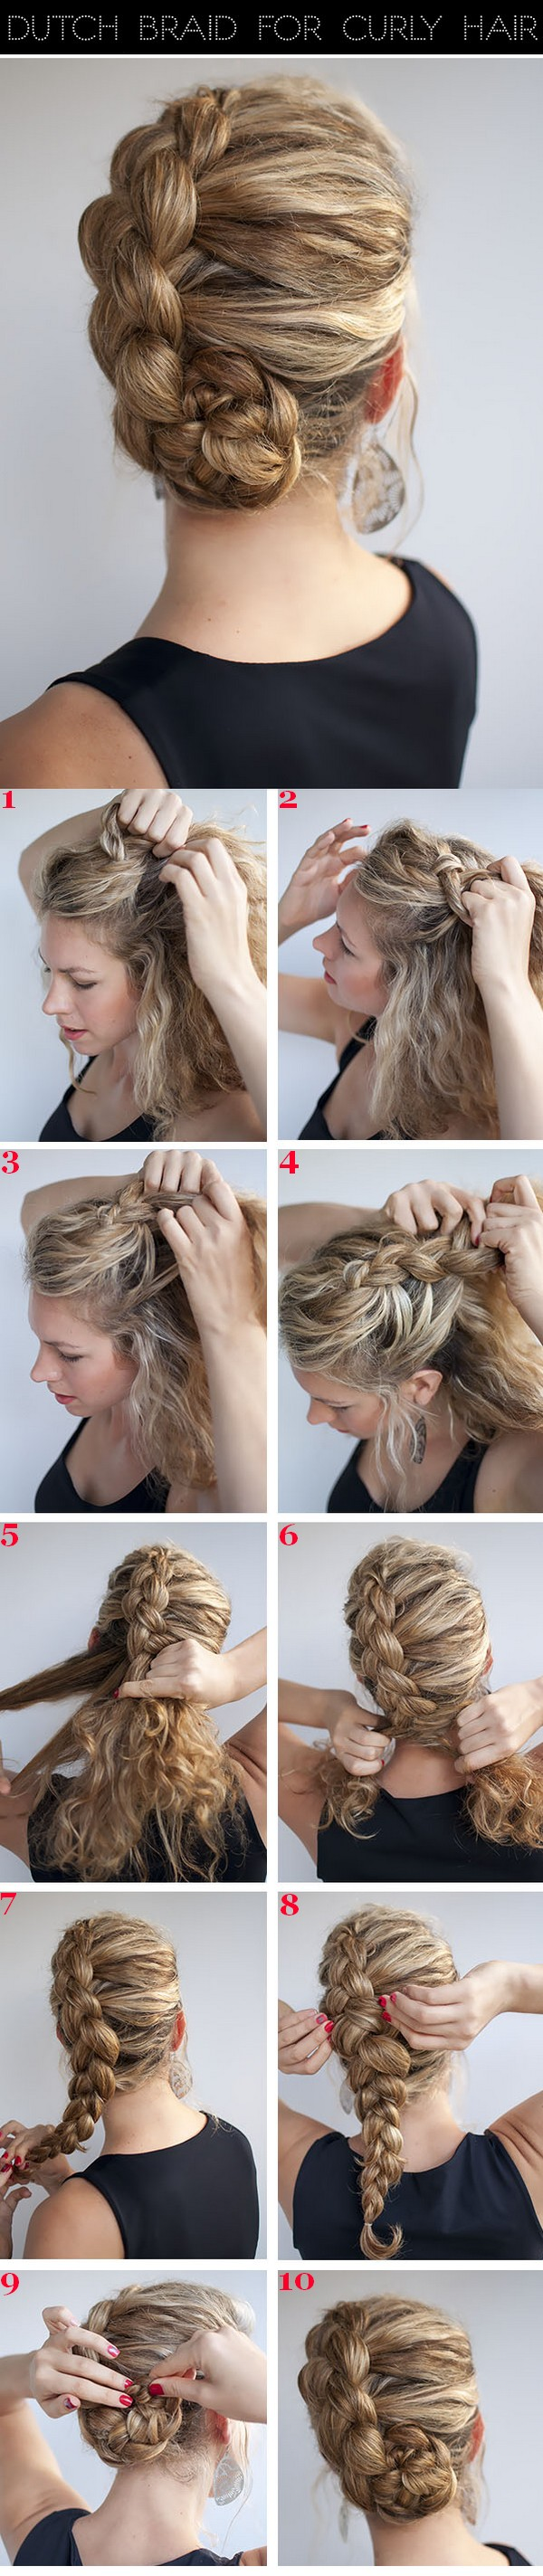 Dutch braid for curly hairstyles hair pinterest dutch braids